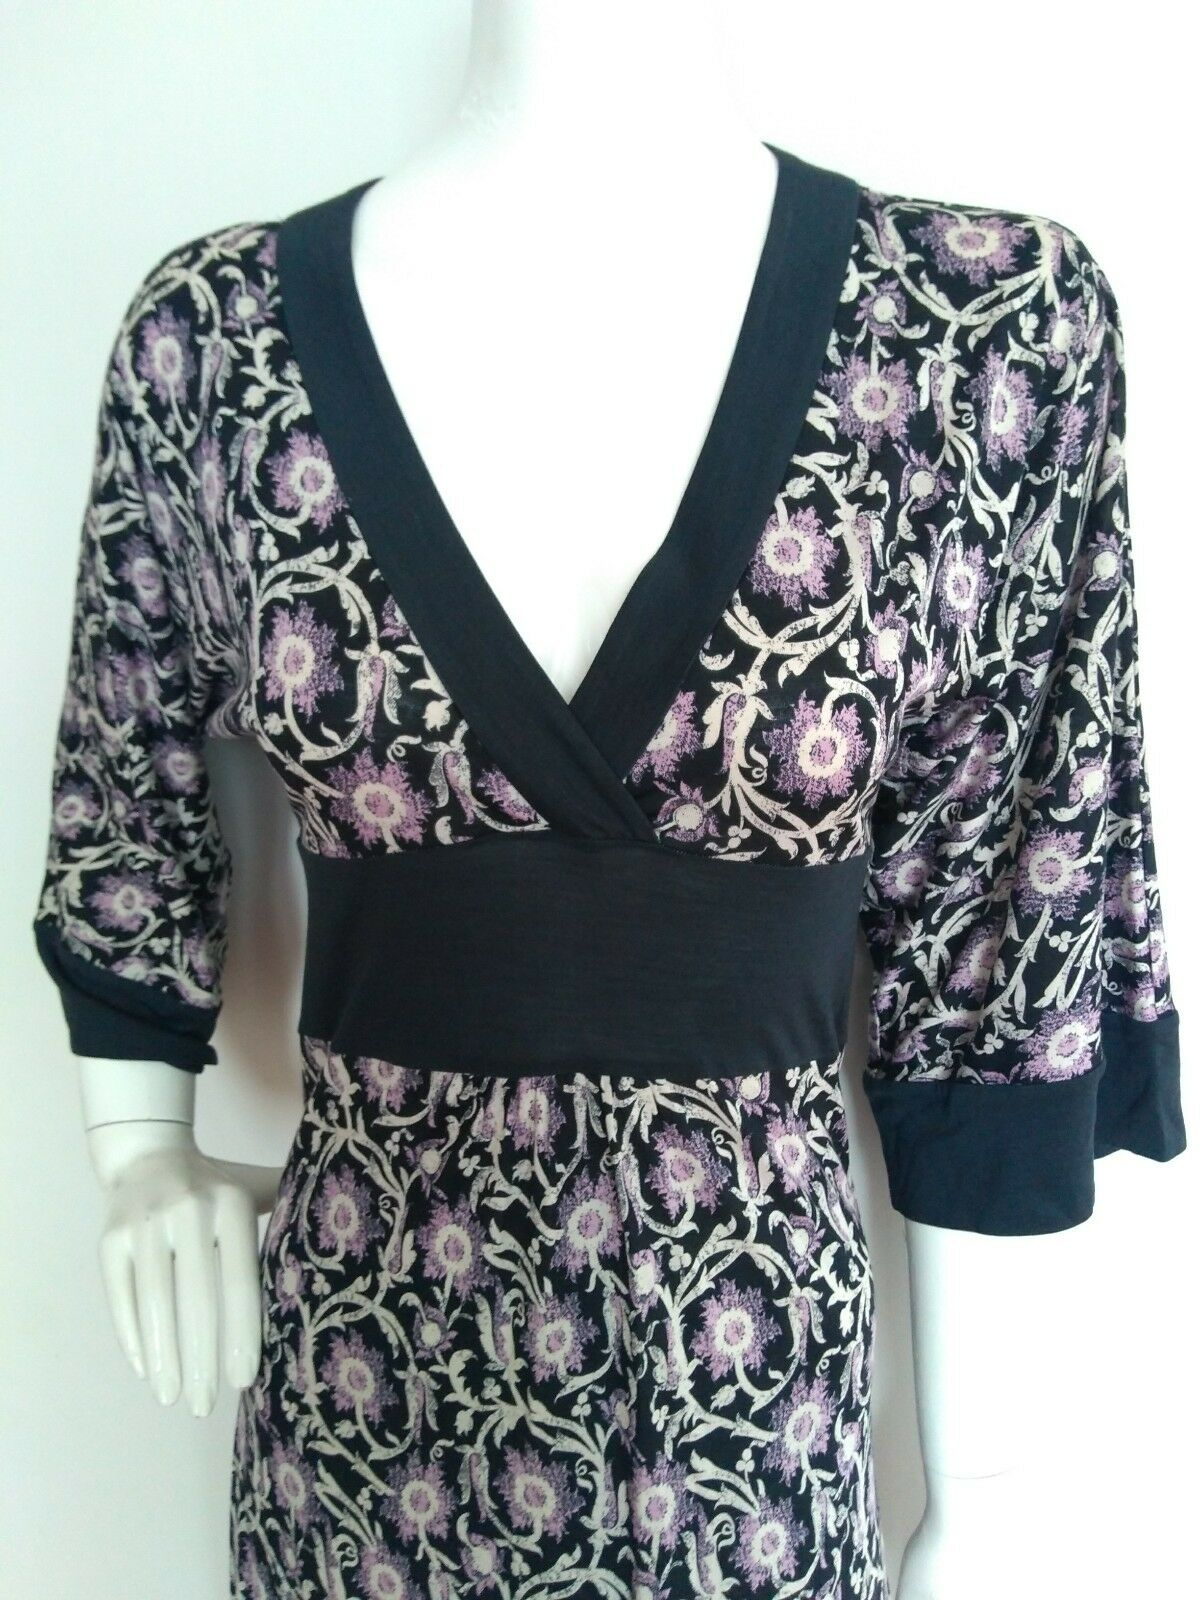 Designer DIANE VON FURSTENBERG FURSTENBERG FURSTENBERG Thea dress size 4 UK8 --USED ONCE-- below knee cfded9